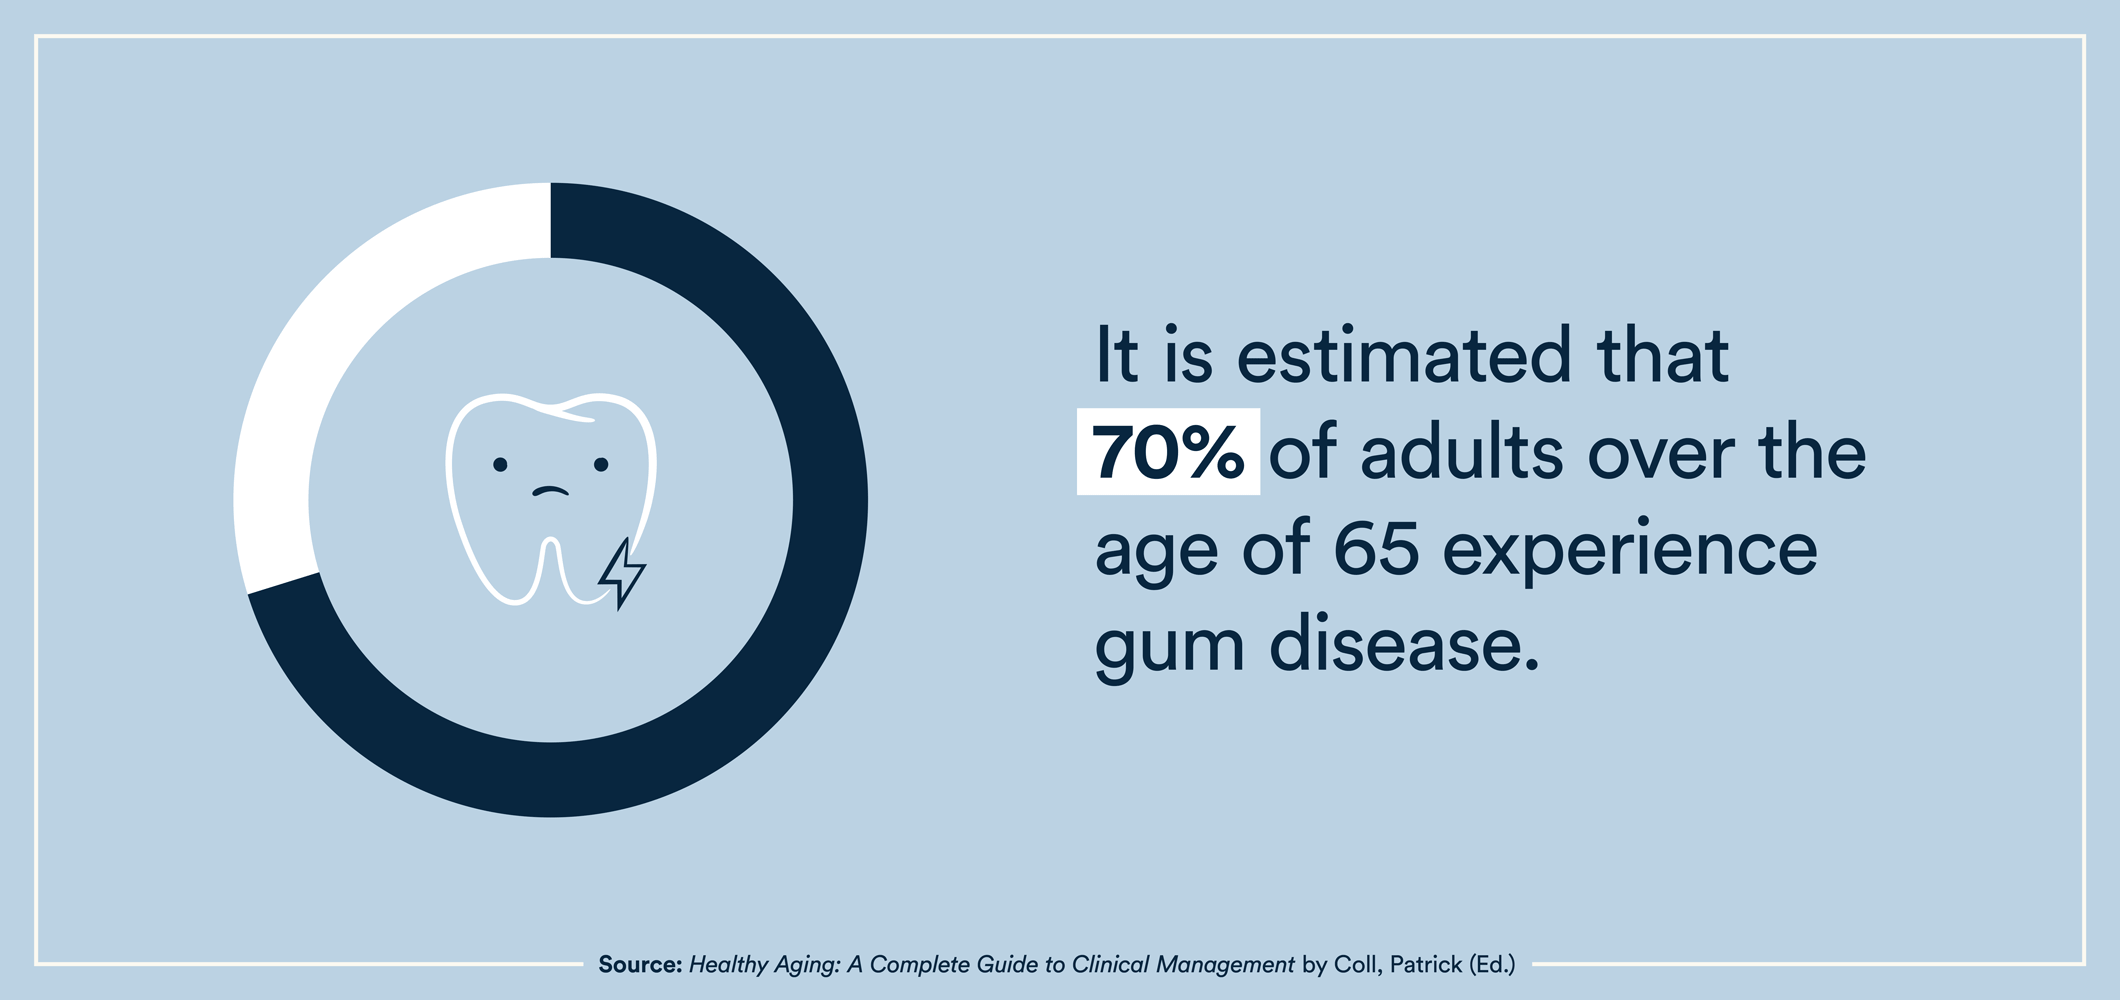 It's estimated that 70% of adults over the age of 65 experience gum disease.